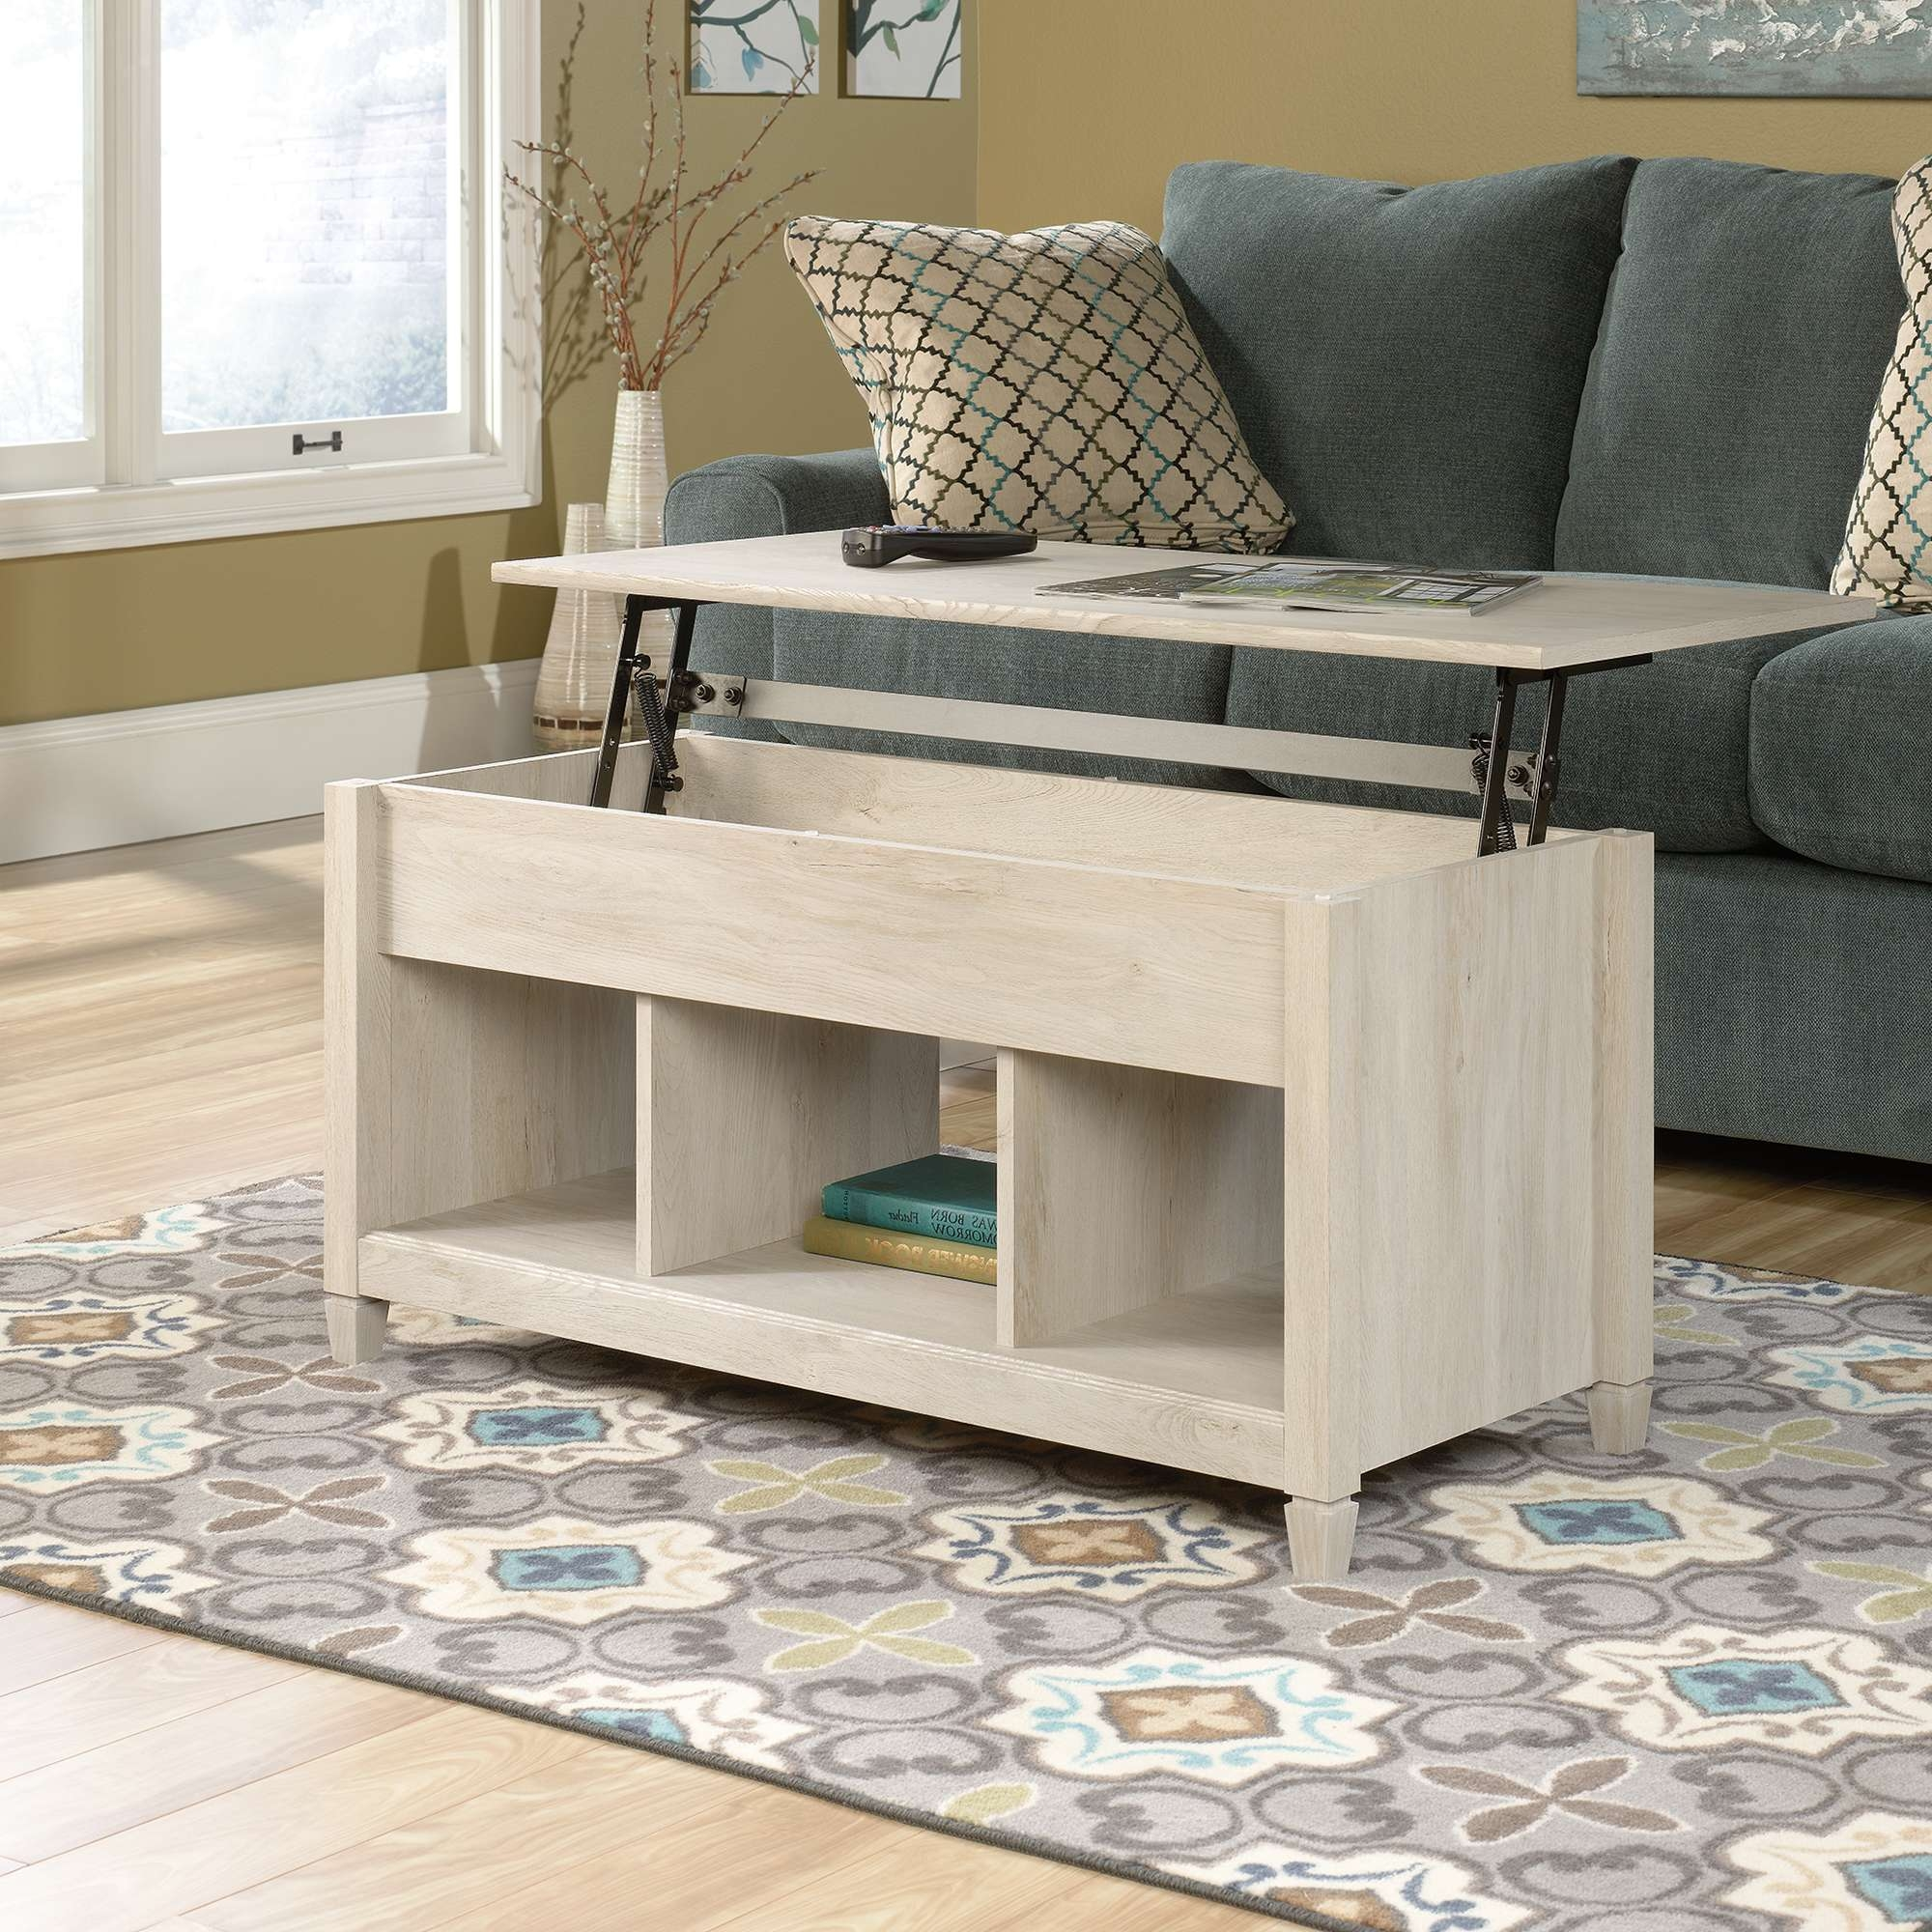 Sauder Throughout Fashionable Coffee Tables Top Lifts Up (View 17 of 20)